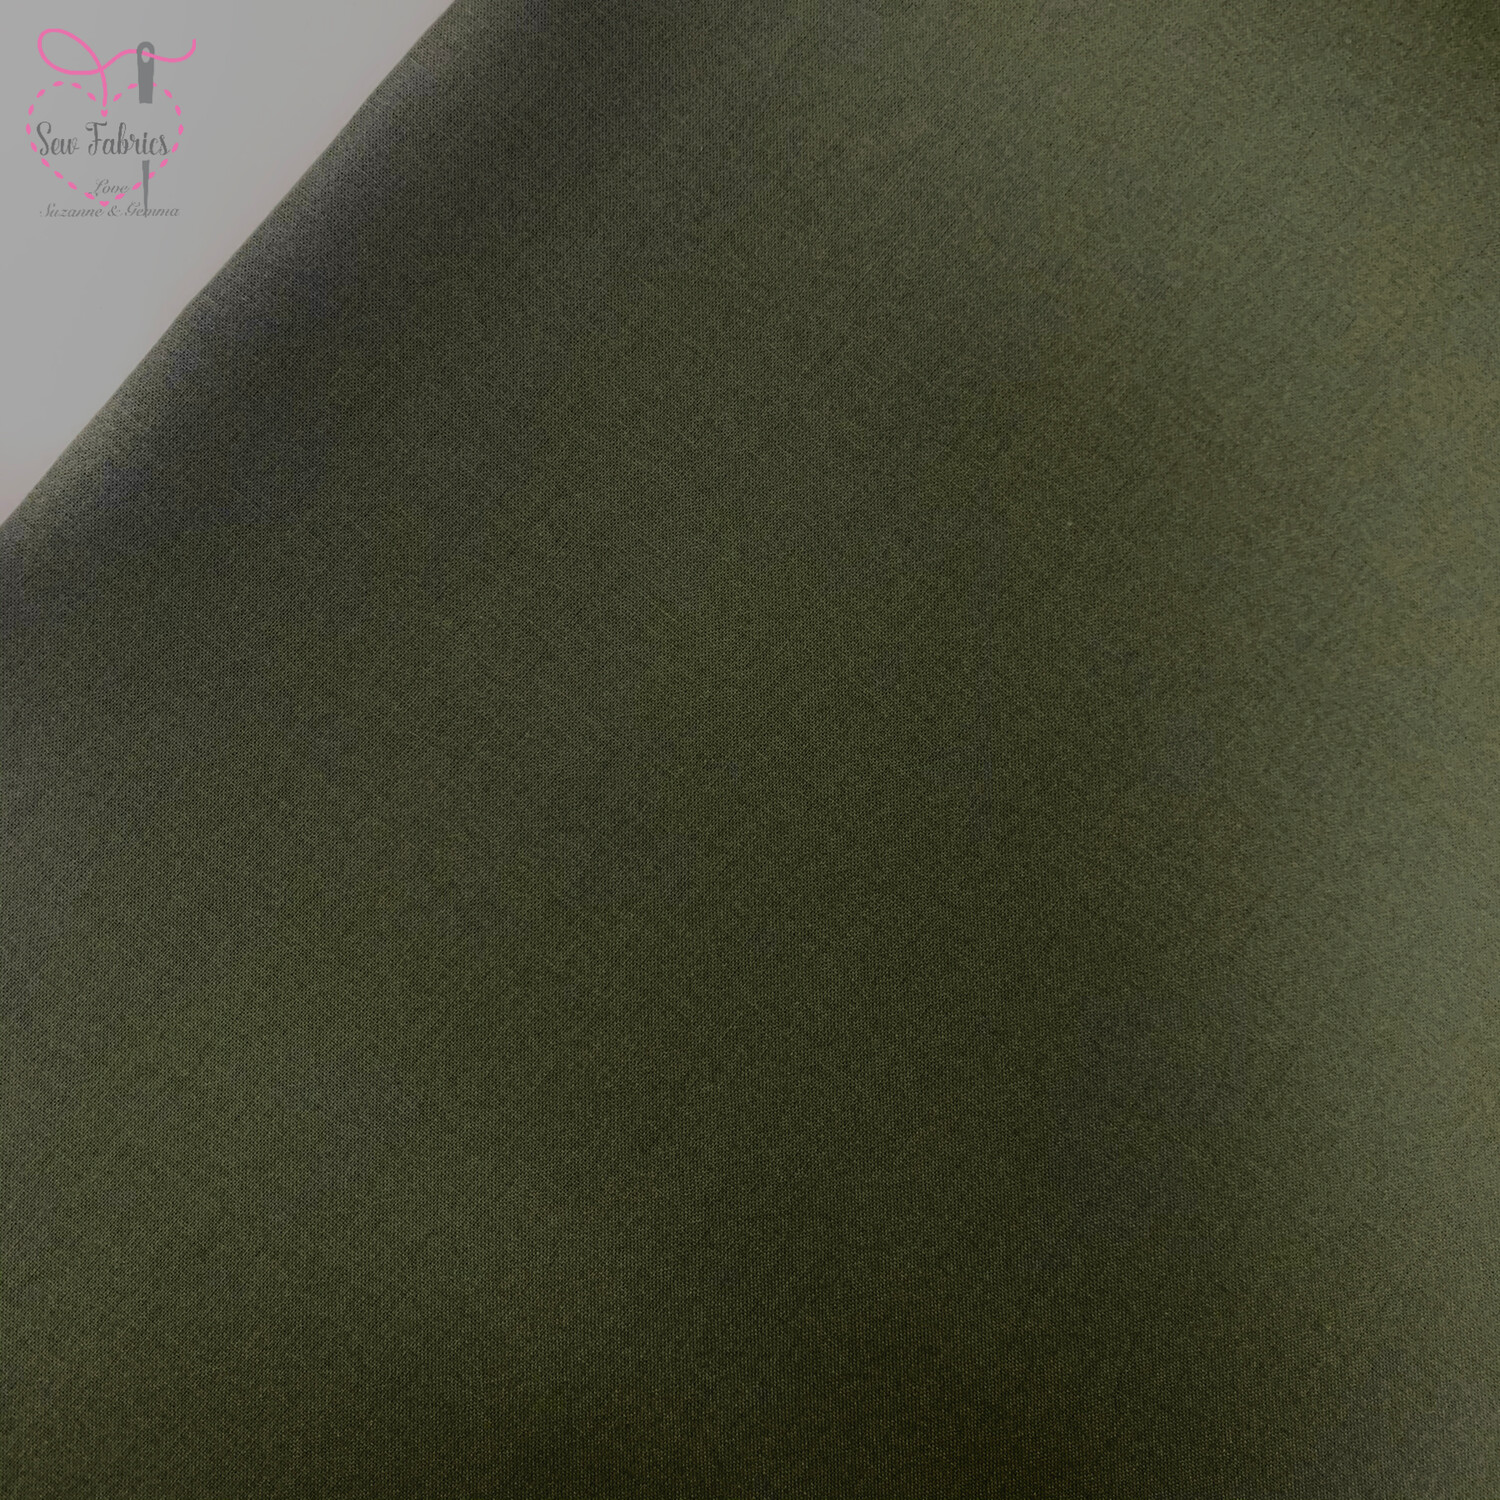 Olive Green 100% Craft Cotton Solid Fabric Plain Material